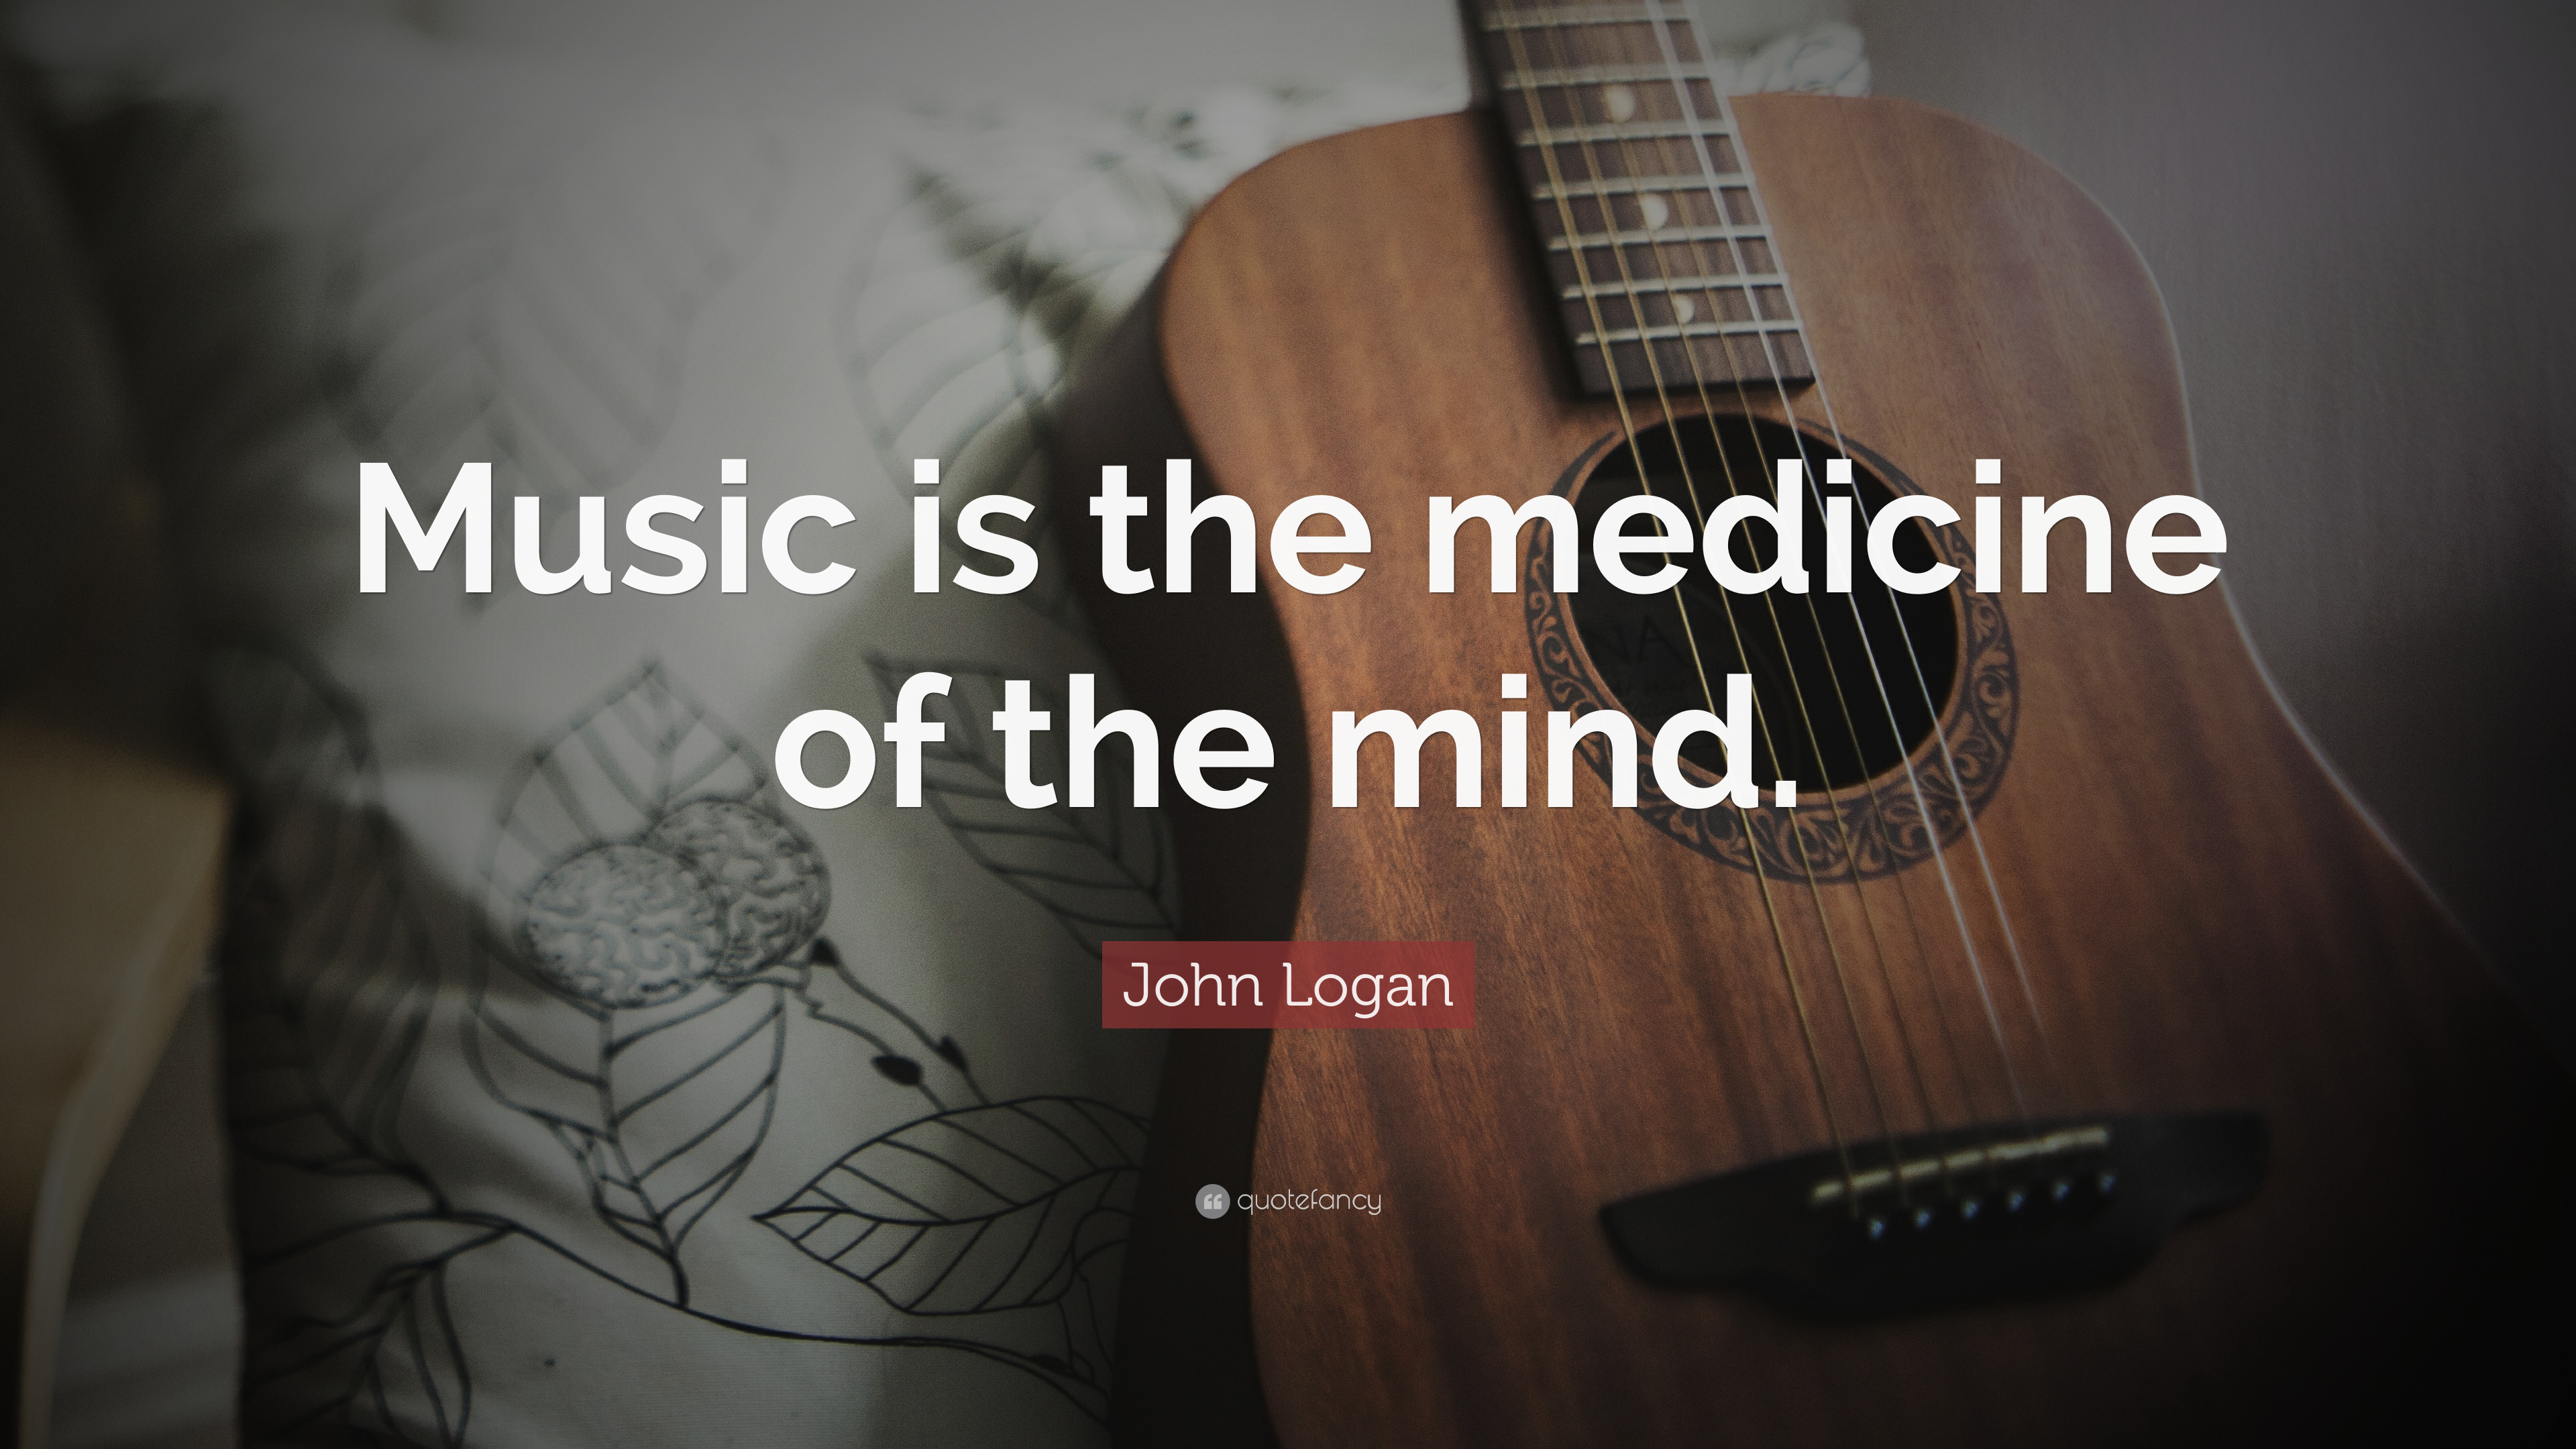 John Logan Quote - Music Quotes With Guitar - HD Wallpaper